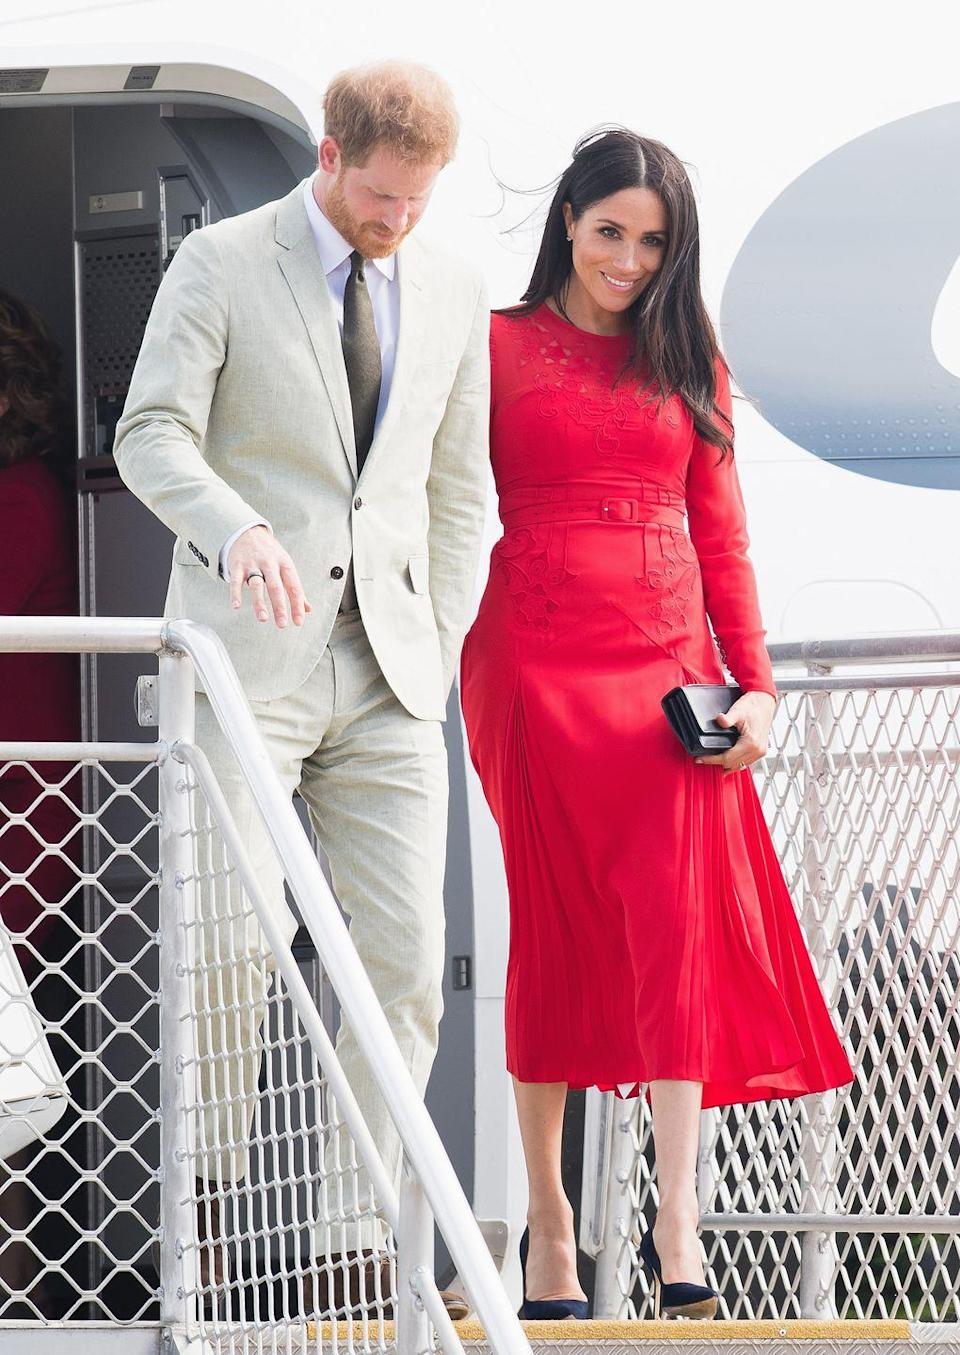 """<p>Meghan had a quick change on the plane and arrived Tonga wearing a <a href=""""https://www.townandcountrymag.com/style/fashion-trends/a24183870/meghan-markle-white-theia-gown-dinner-tonga-photo/"""" rel=""""nofollow noopener"""" target=""""_blank"""" data-ylk=""""slk:red midi-length dress"""" class=""""link rapid-noclick-resp"""">red midi-length dress</a> by Self Portrait paired with a black clutch and pumps.</p>"""